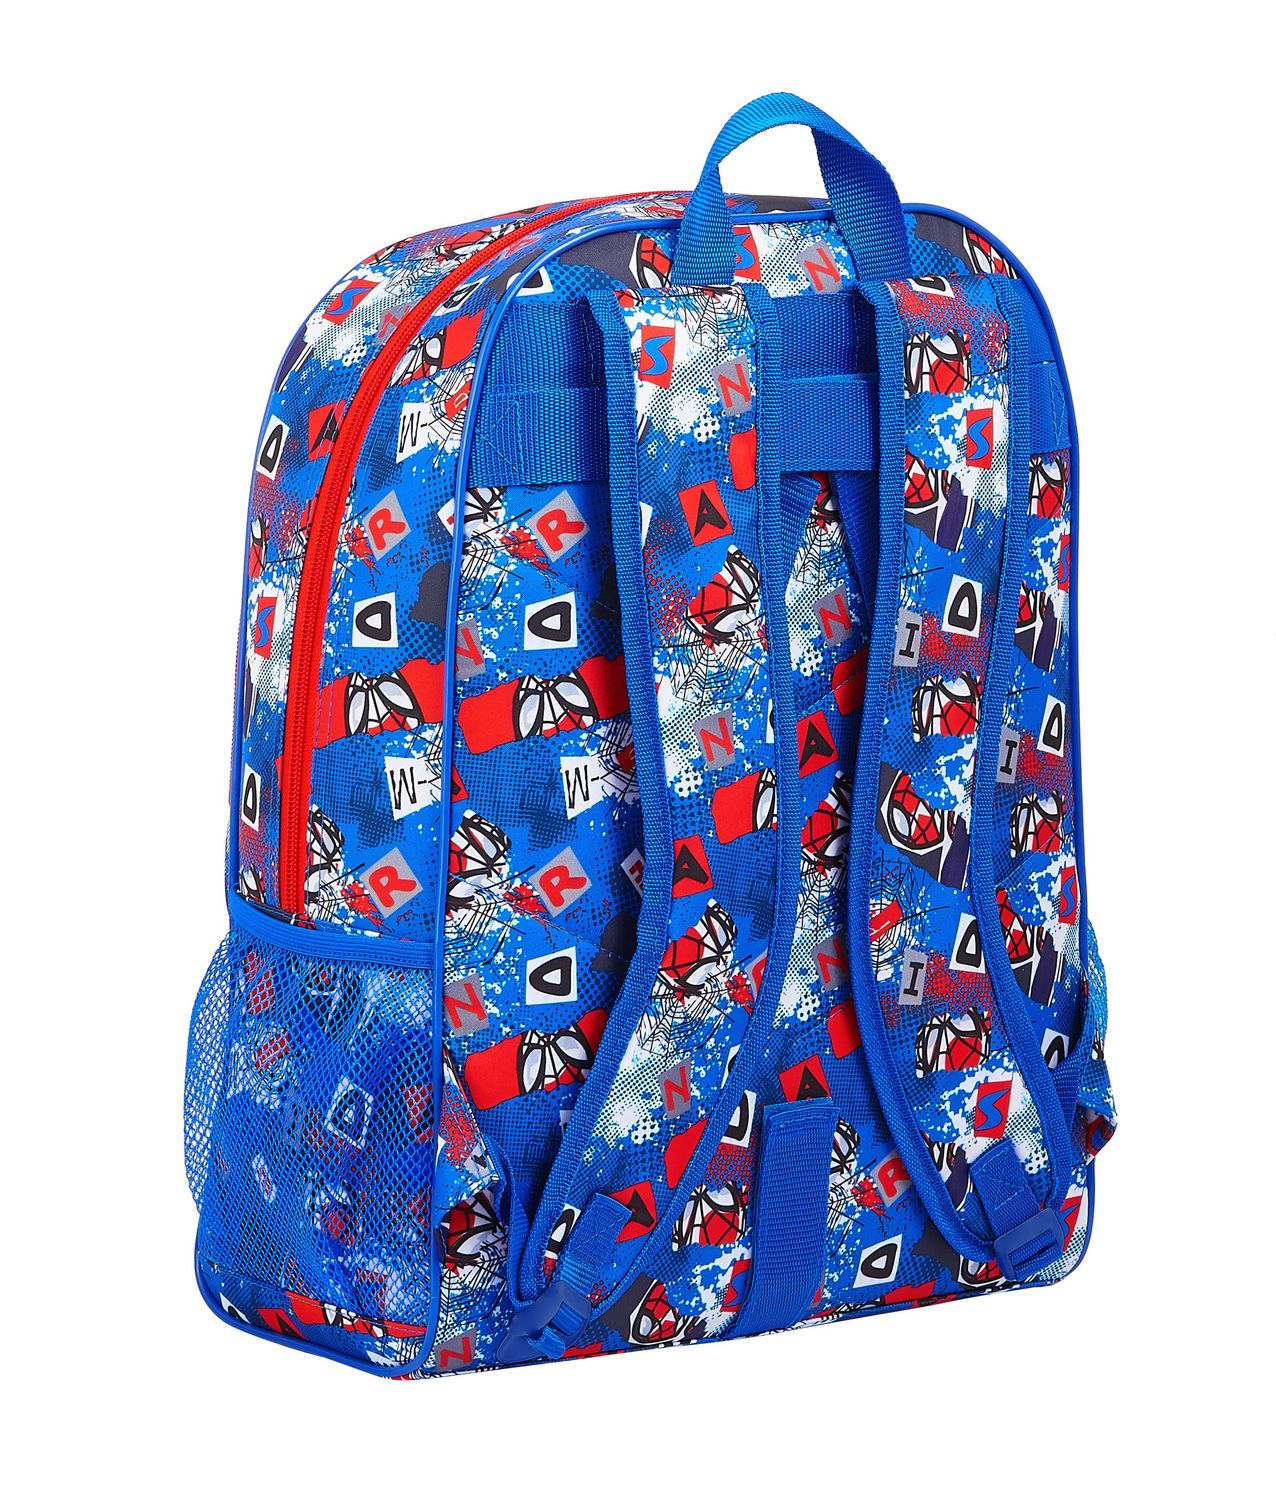 SPIDERMAN PERSPECTIVE Backpack Rucksack 42cm – image 2